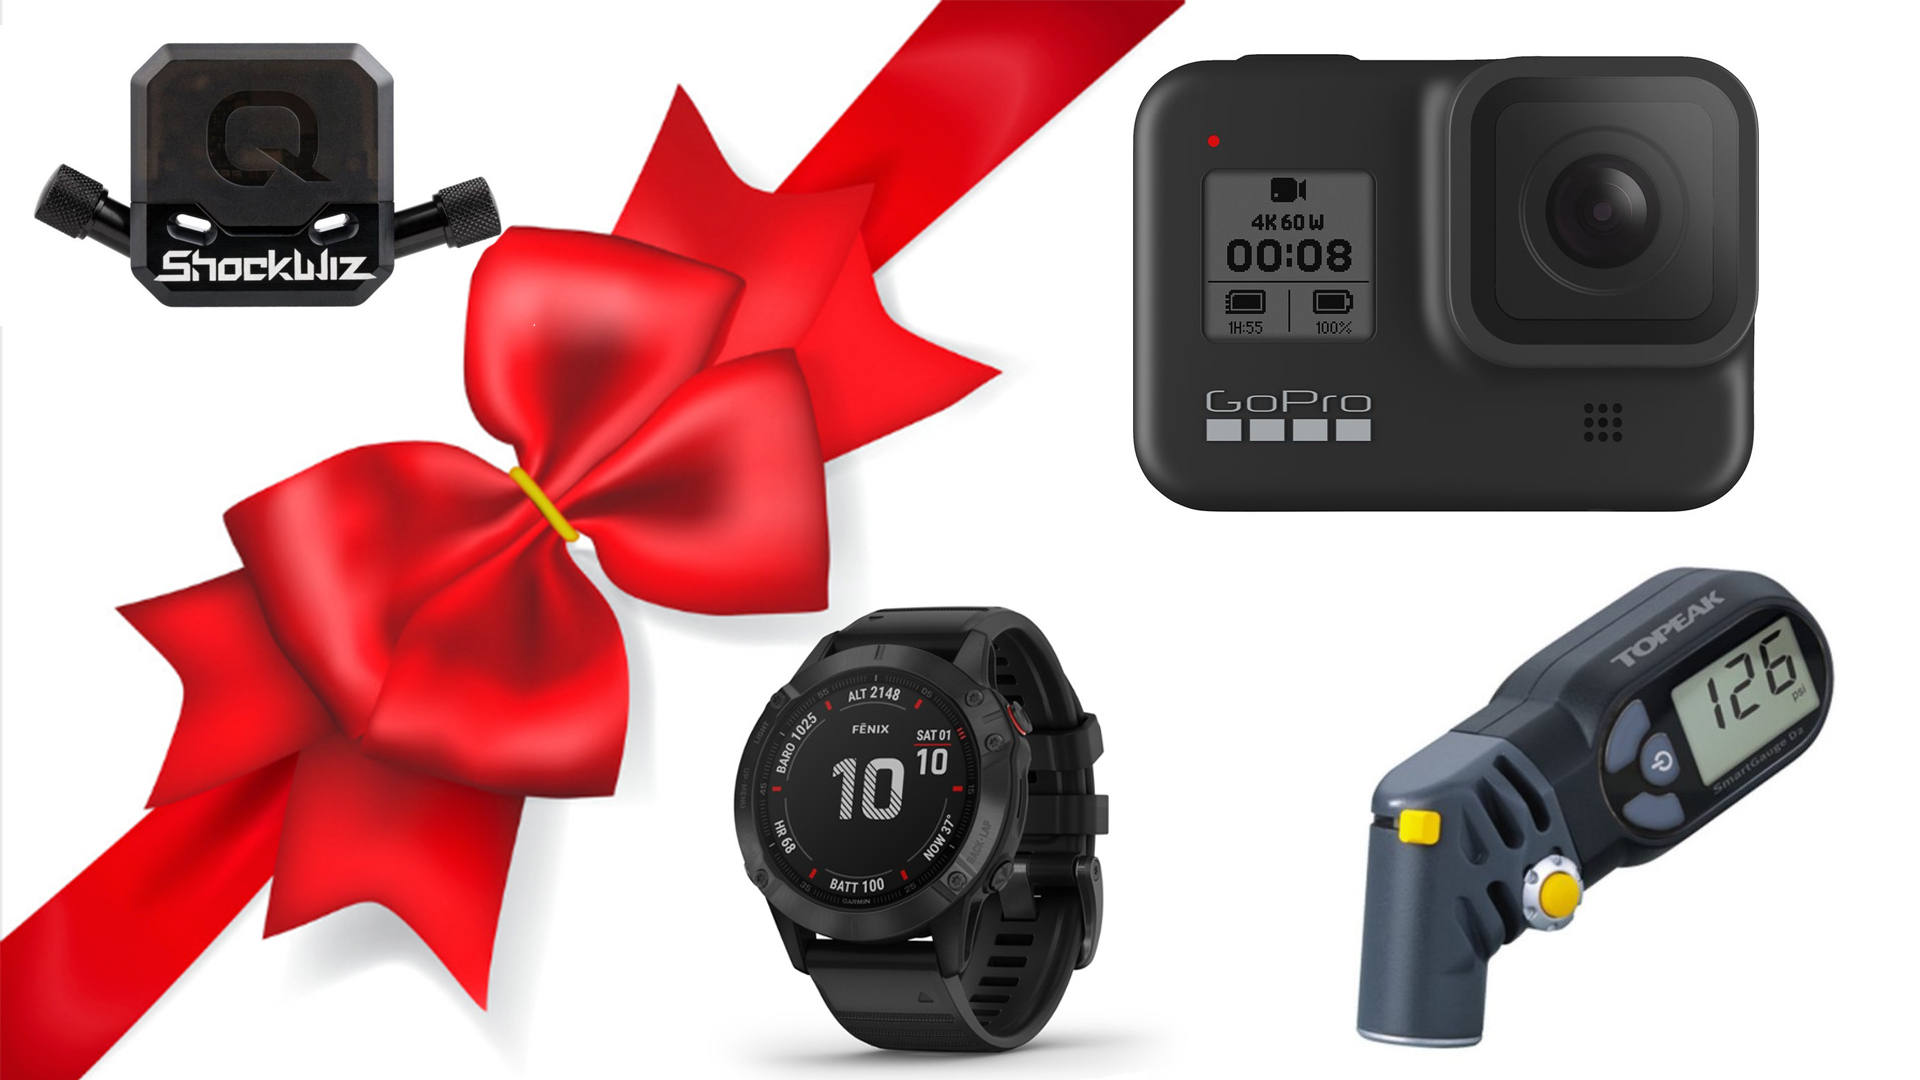 These great gifts for gadget loving mountain bikers are sure to please this holiday season.